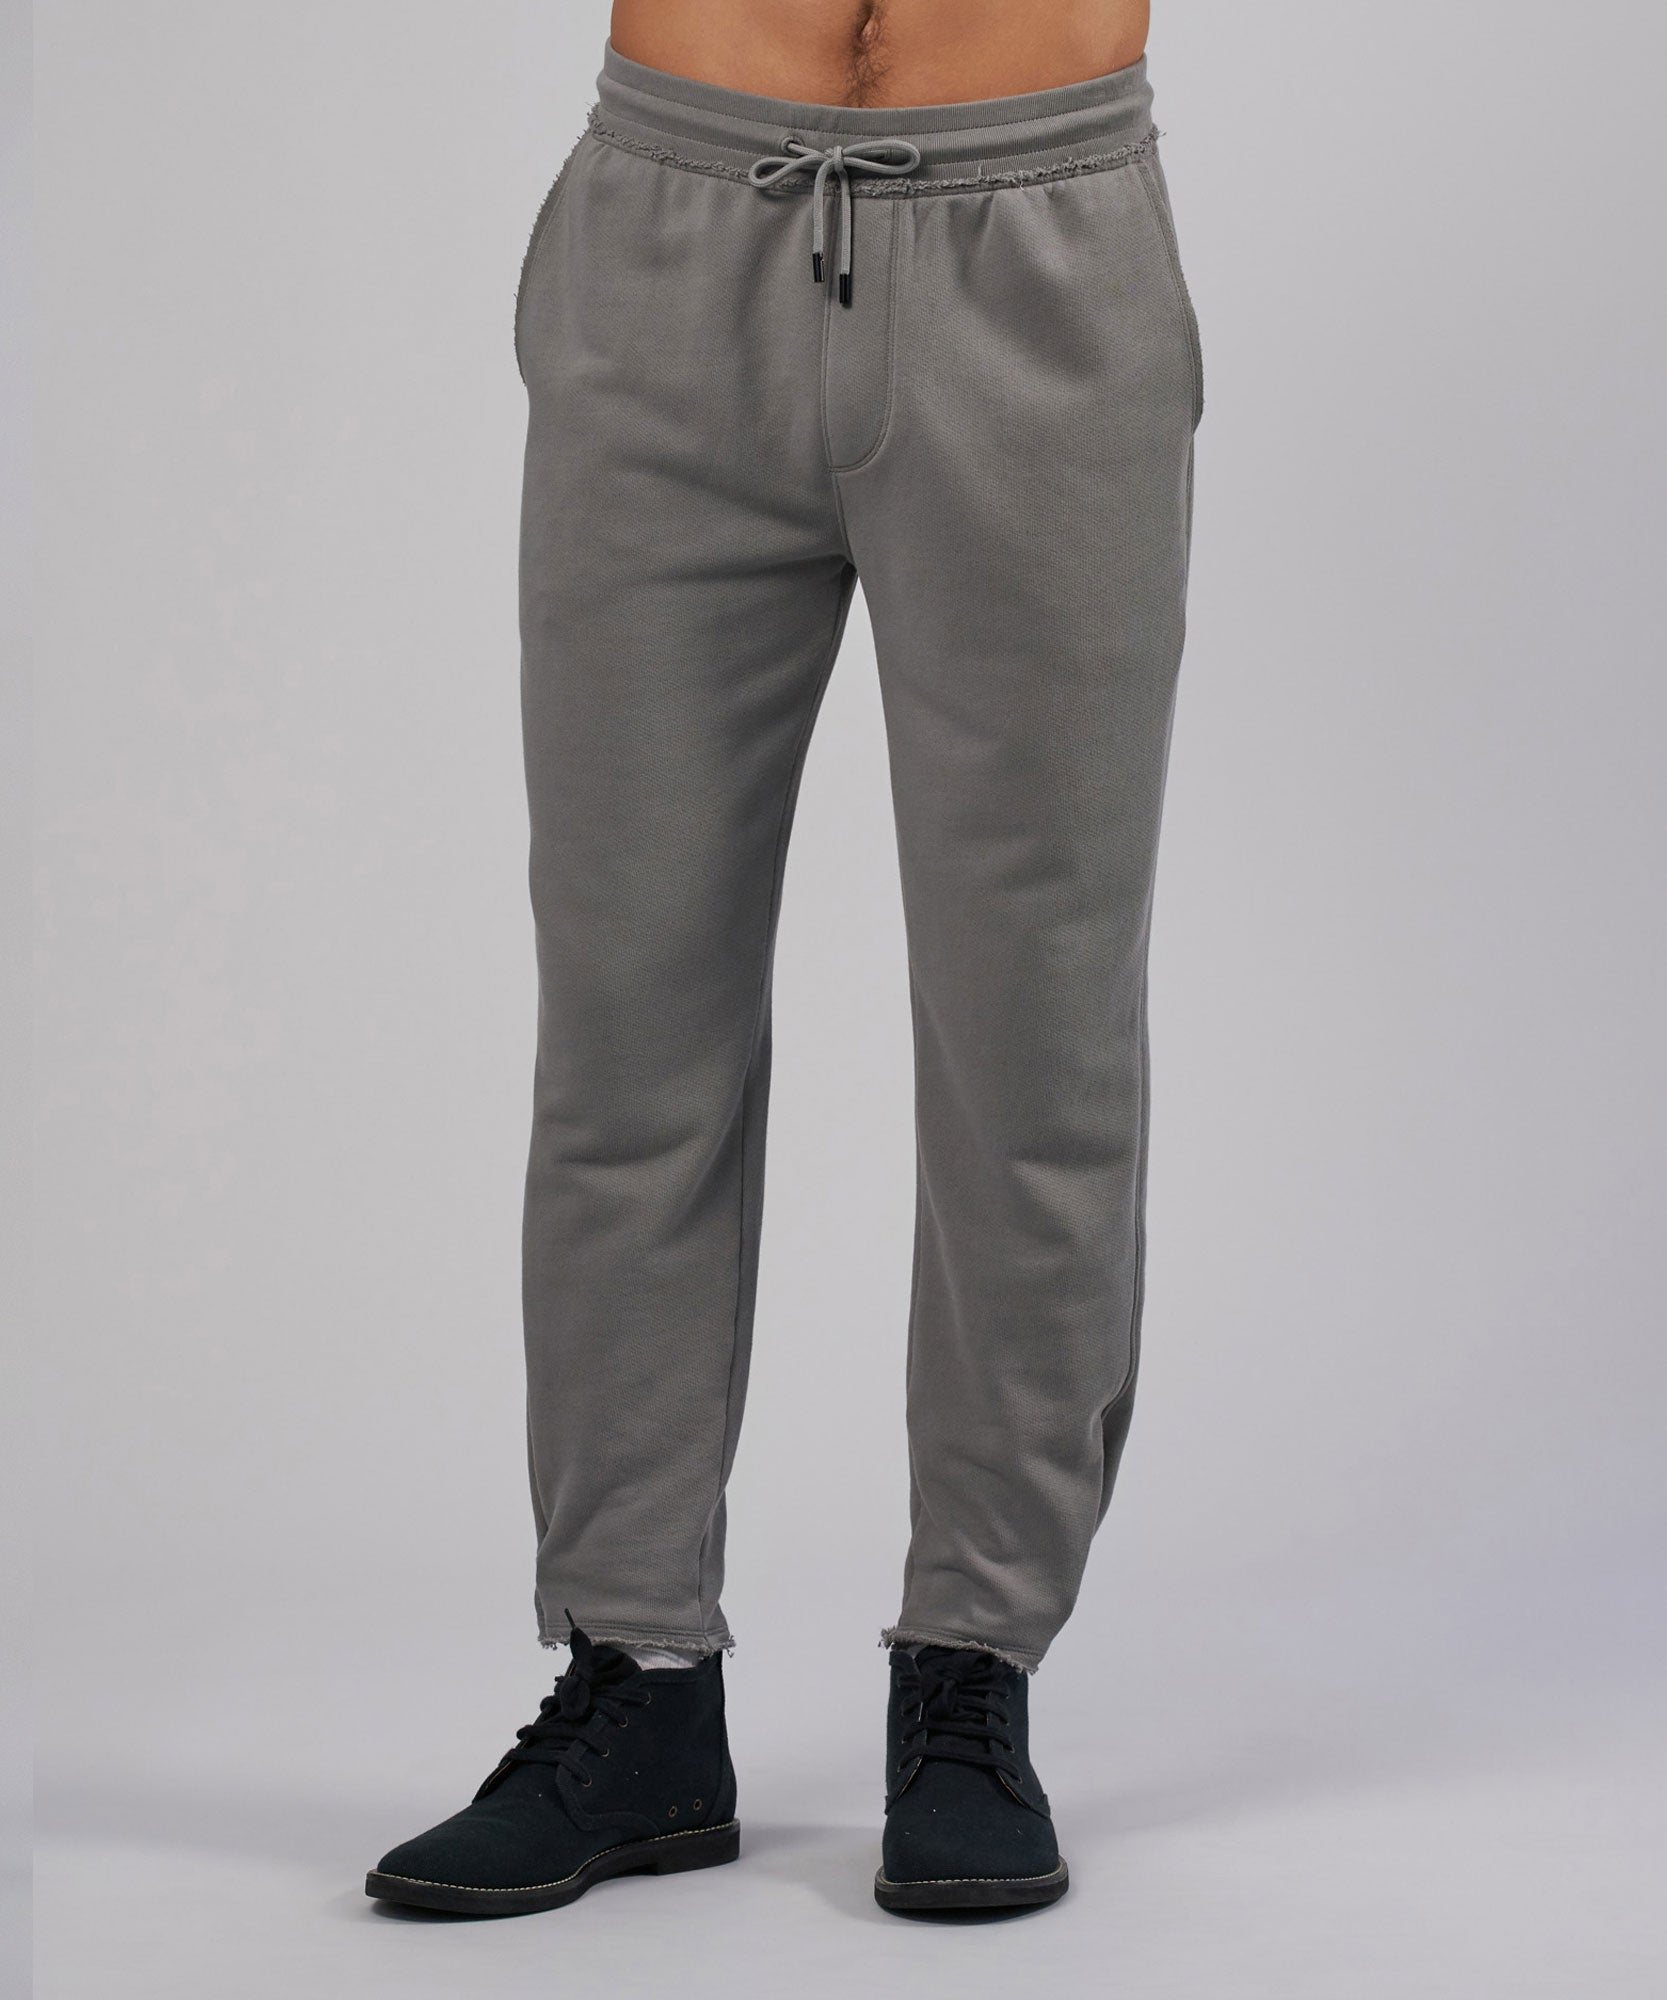 Fog French Terry Pull-On Pants - Men's Luxe Loungewear by ATM Anthony Thomas Melillo